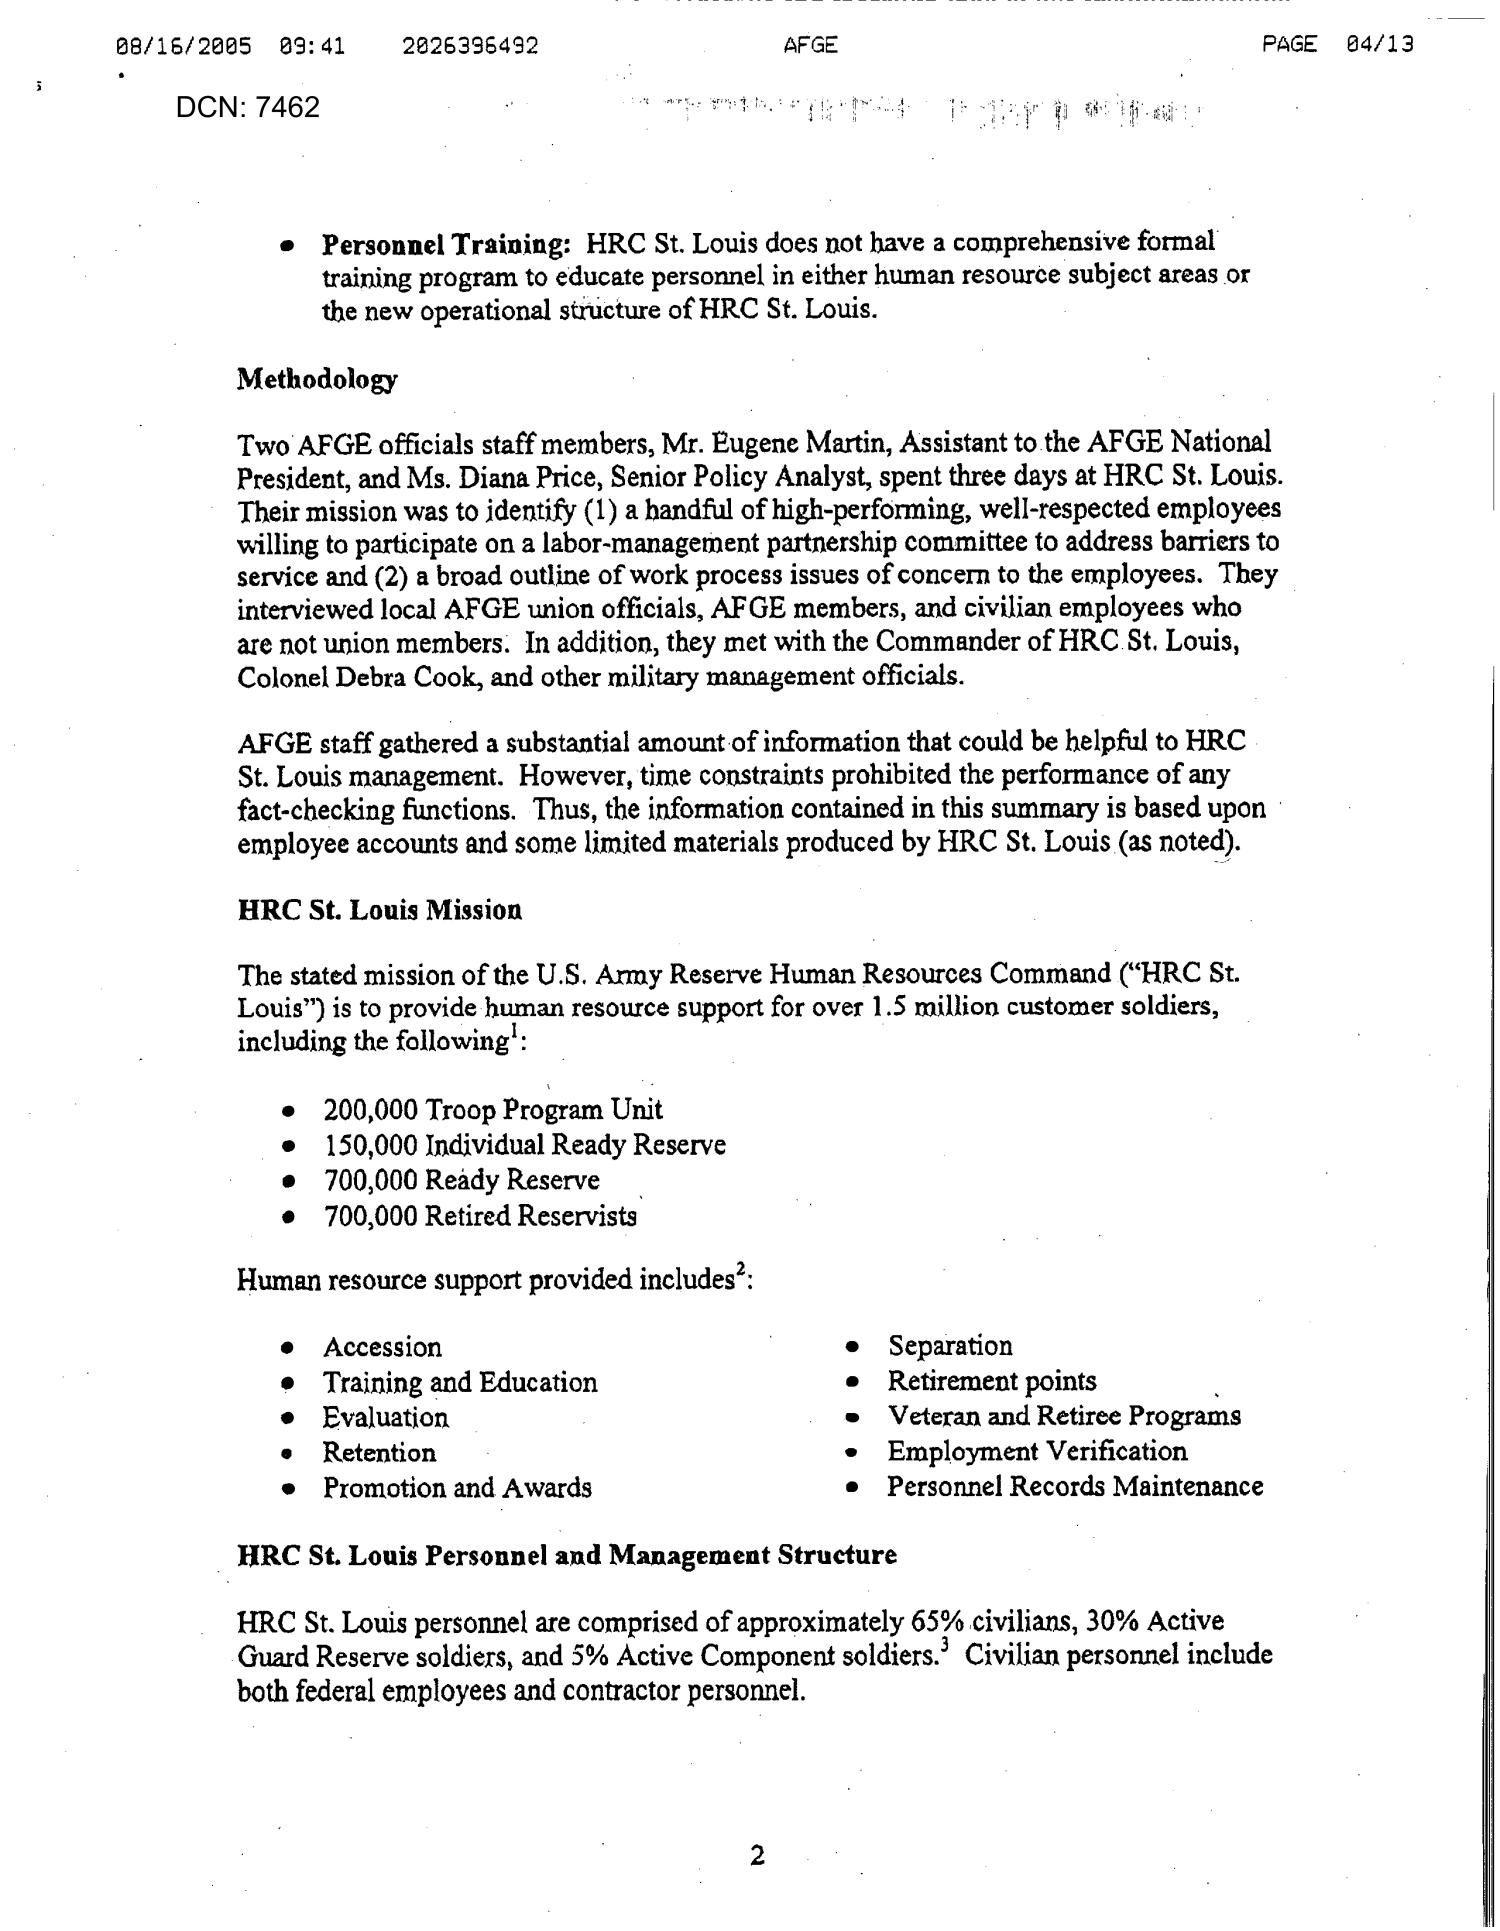 Fax from American Federation of Government (AFGE) Rep Diana Price to A&R Analyst Tim Abrell dtd 16 Aug 2005                                                                                                      [Sequence #]: 4 of 13